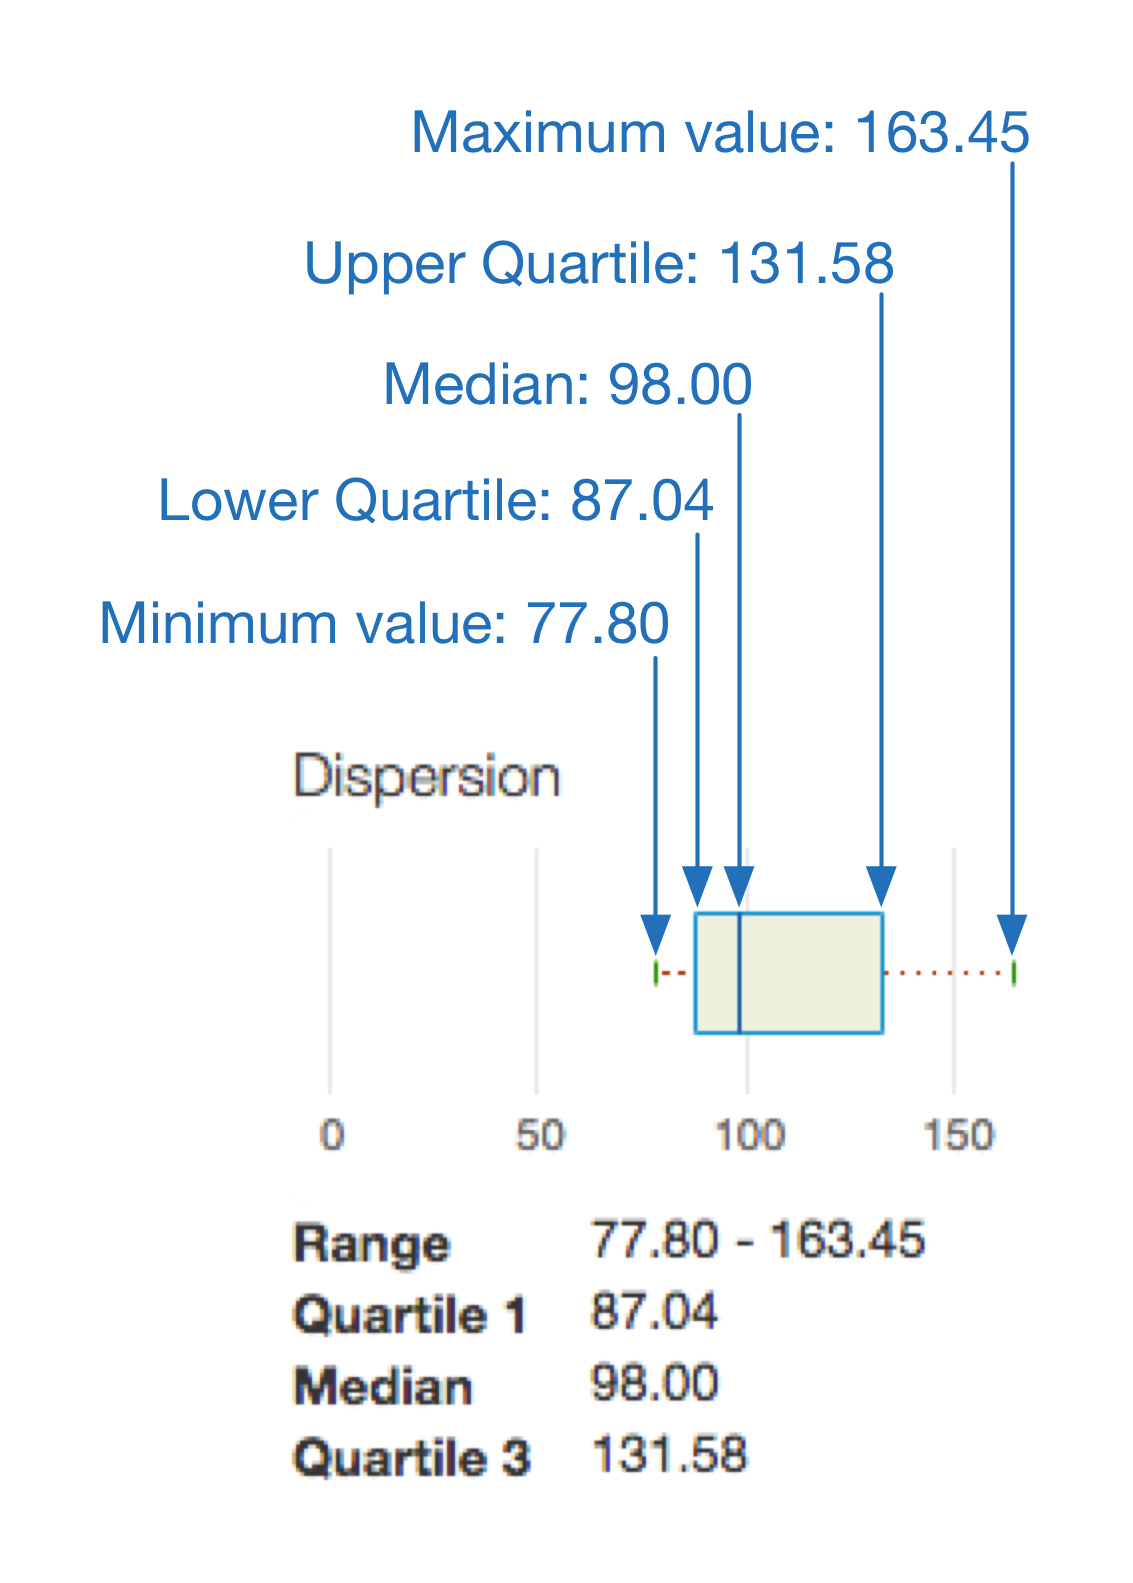 A closeup of the dispersion box plot shows where to find the minimum value, lower     quartile, median, upper quartile, and maximum value.